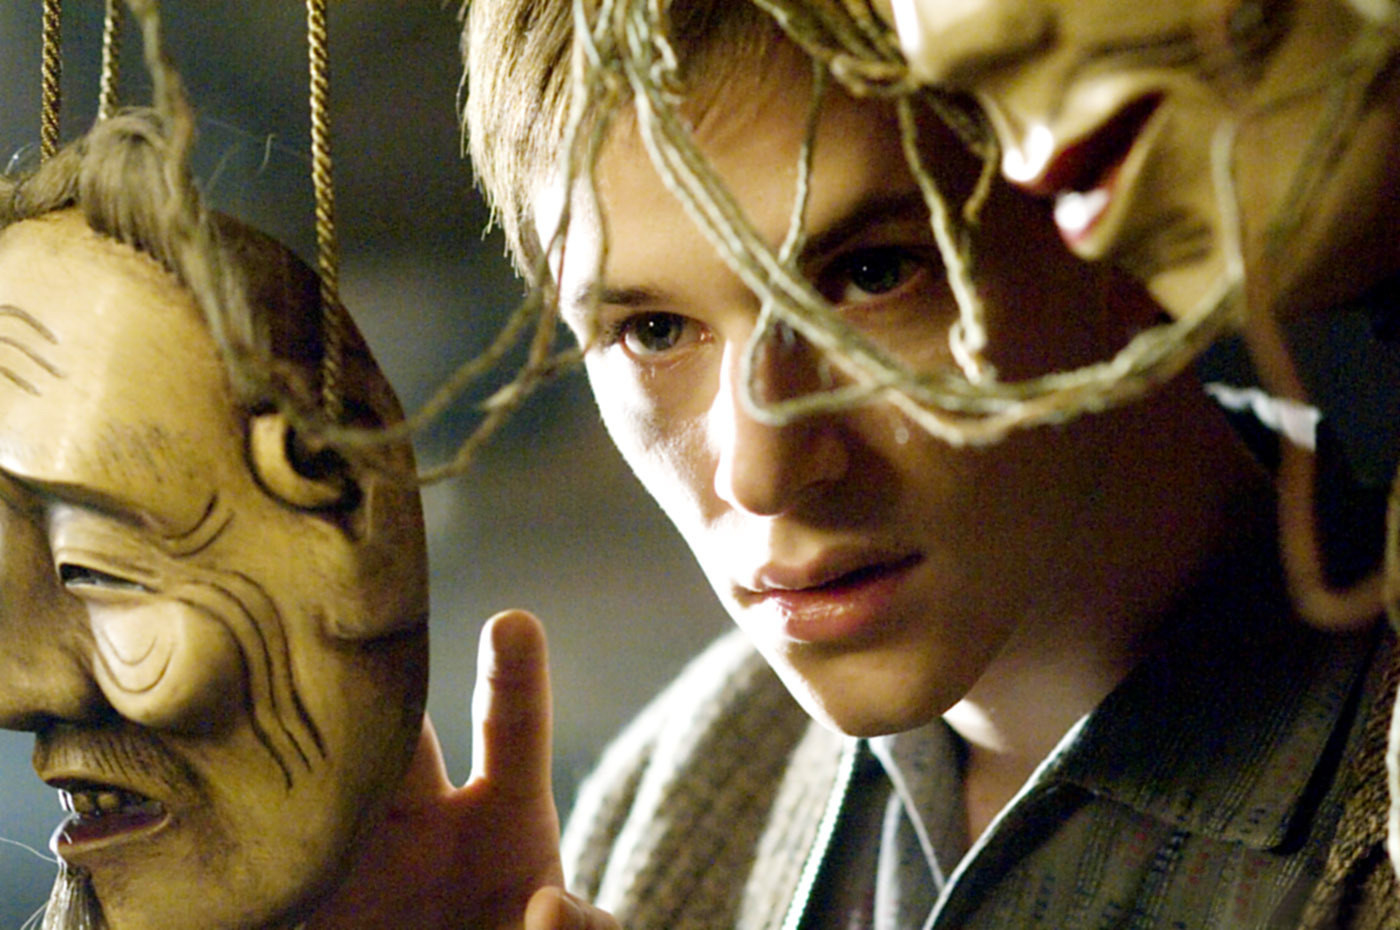 Gaspard Ulliel with an old mask